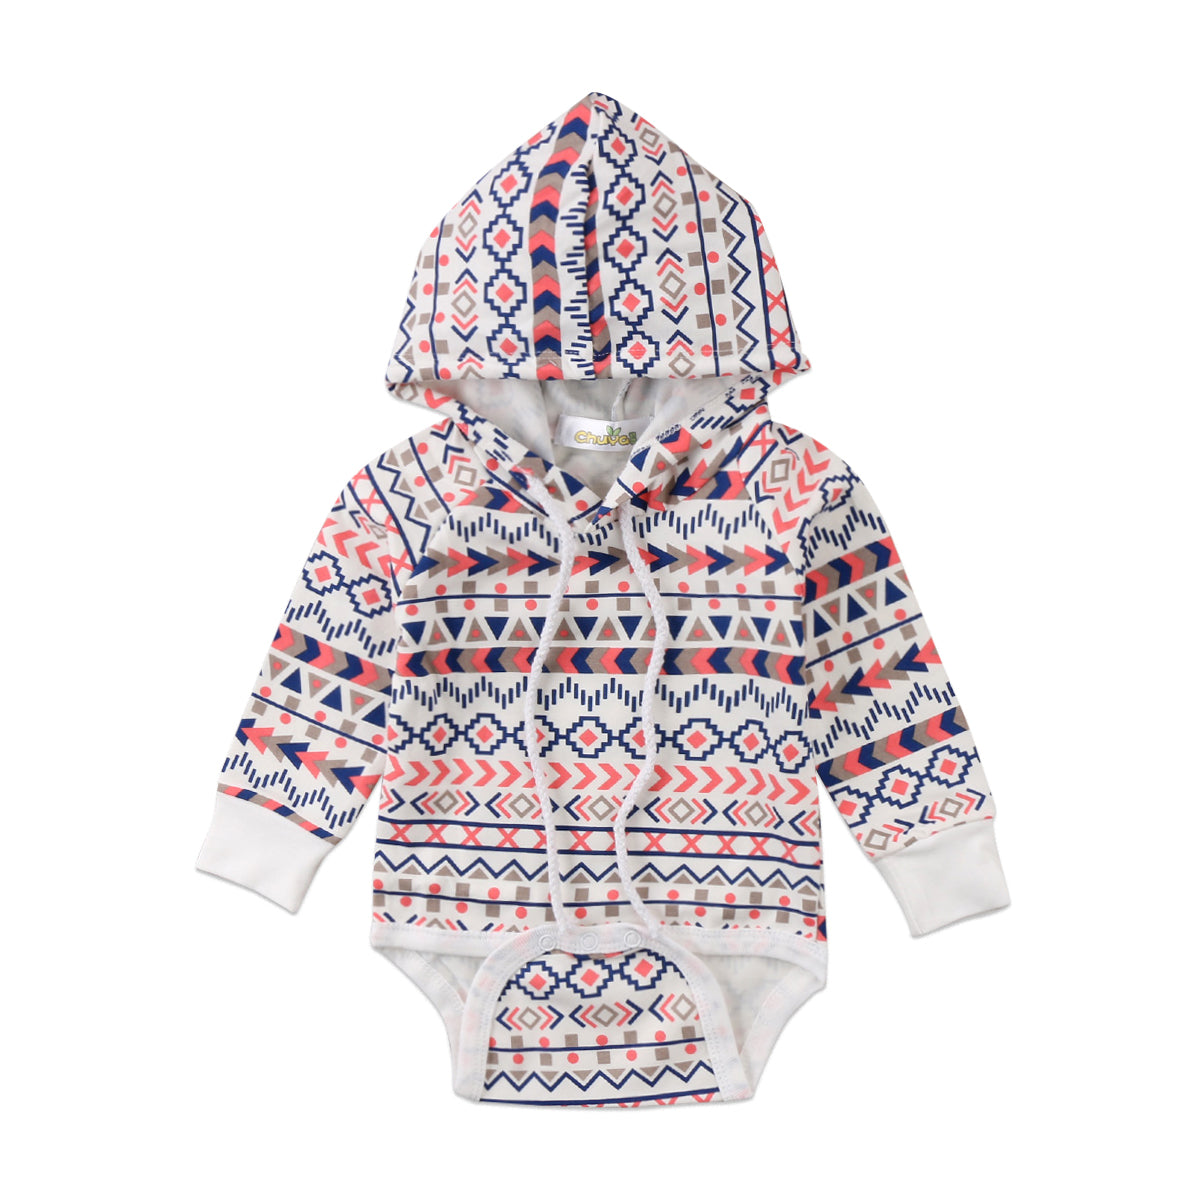 Pudcoco New Baby Boys Girls Cotton Romper Toddler Loose Boho Hoodie Hooded Romper Jumpsuit Clothes Outfits Set